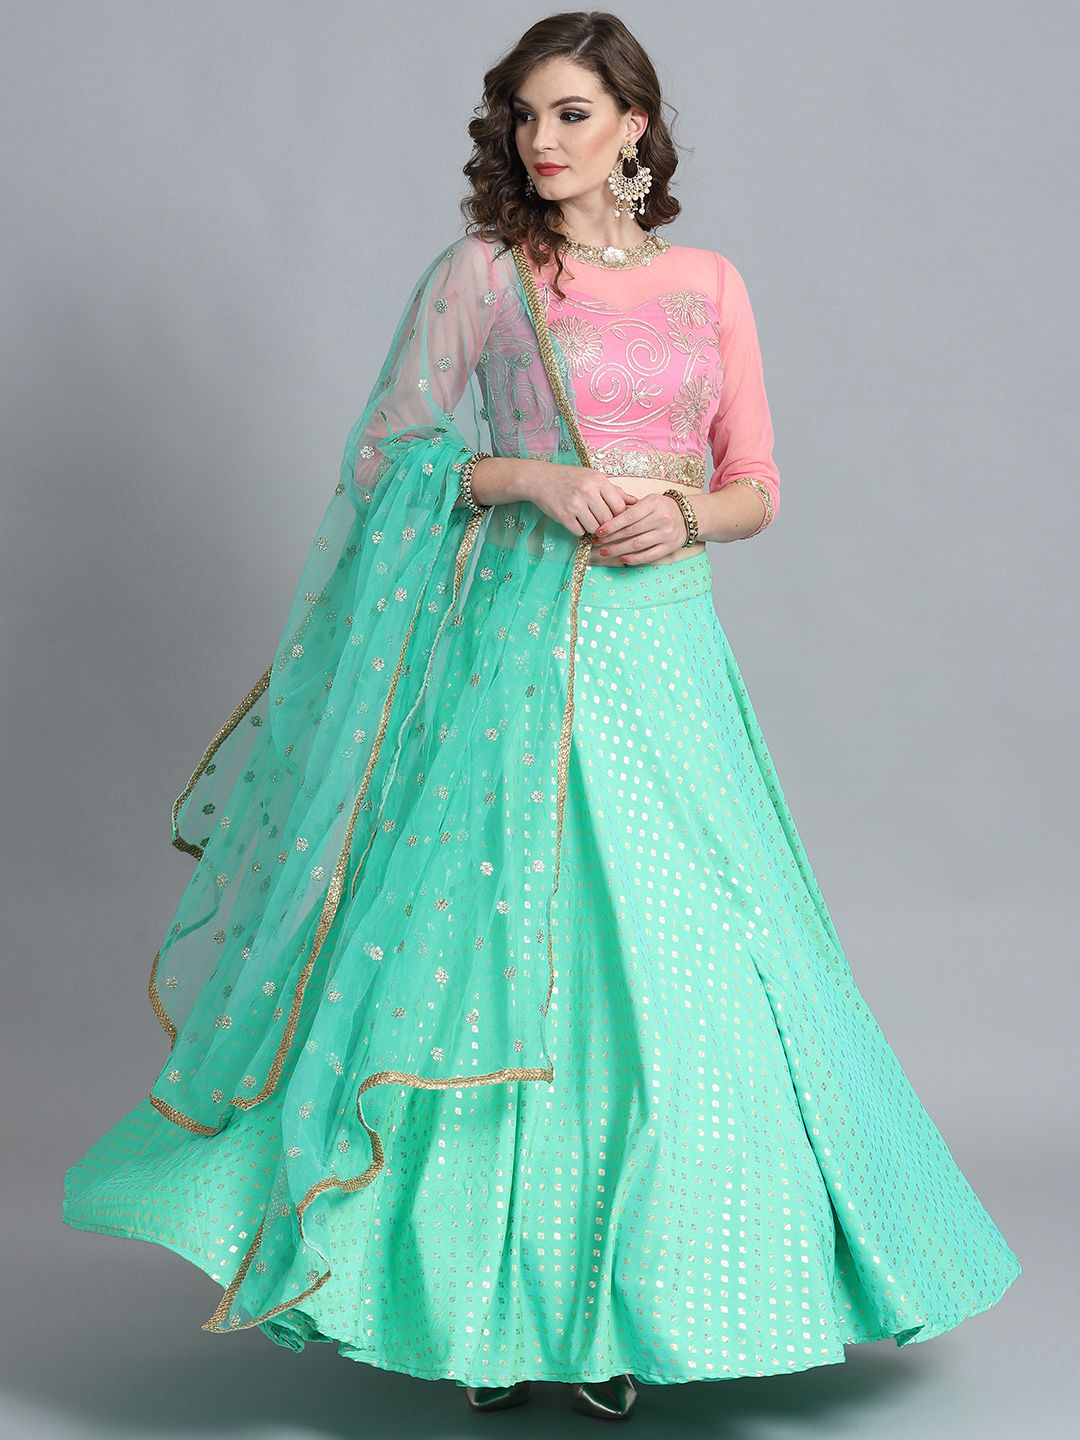 f436c789df Bollywood Vogue Green & Pink Gotta Patti Made To Measure Lehenga Choli  #Lehenga #Green #Pink #Wedding